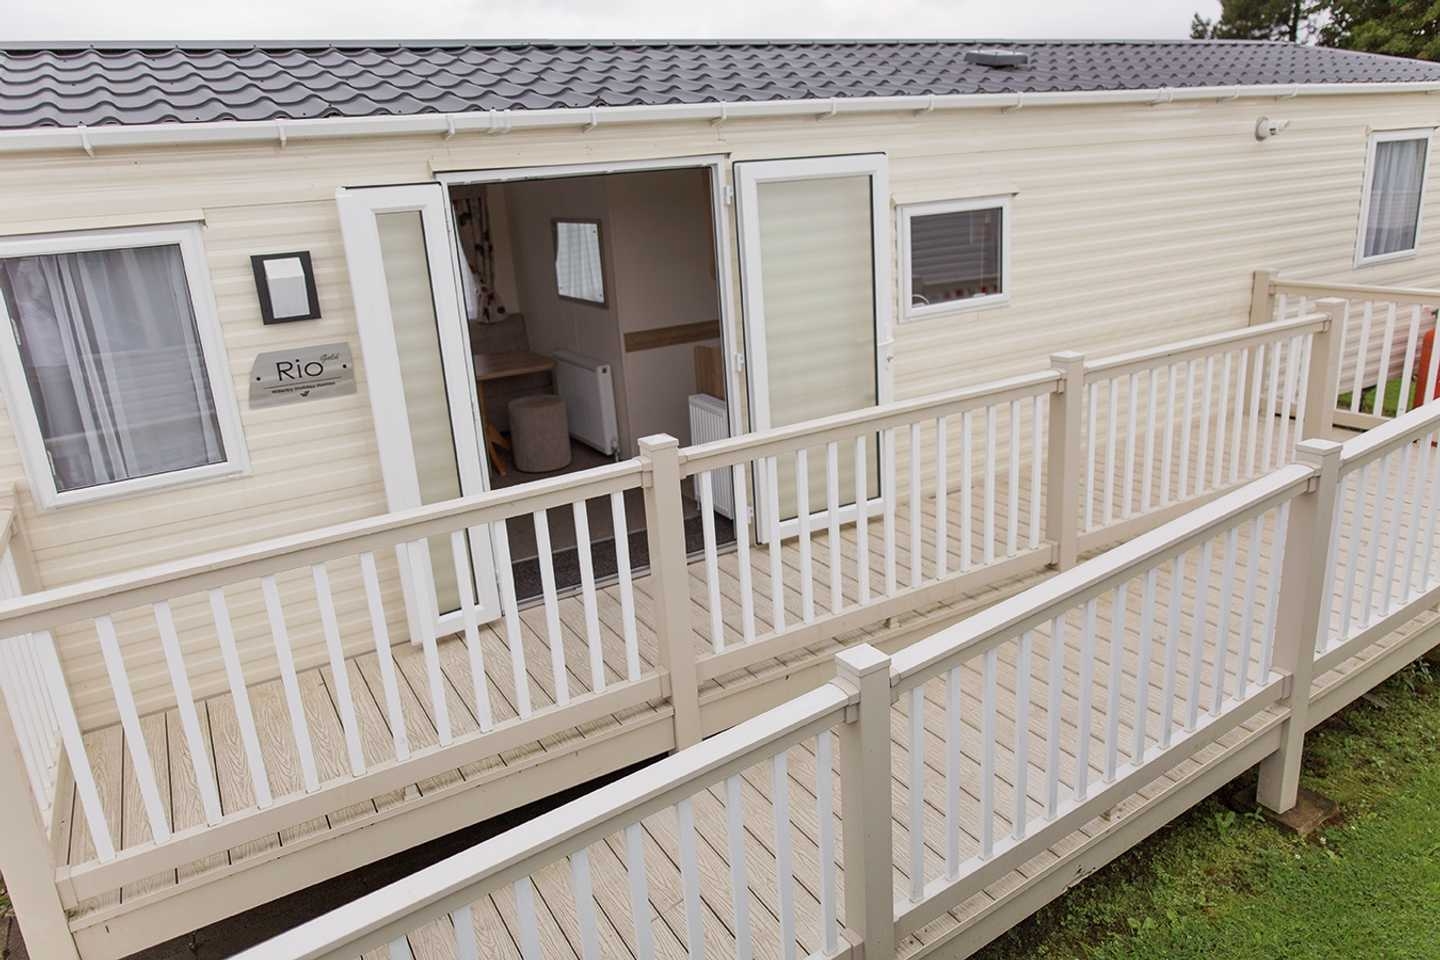 An Adapted caravan wheelchair access ramp